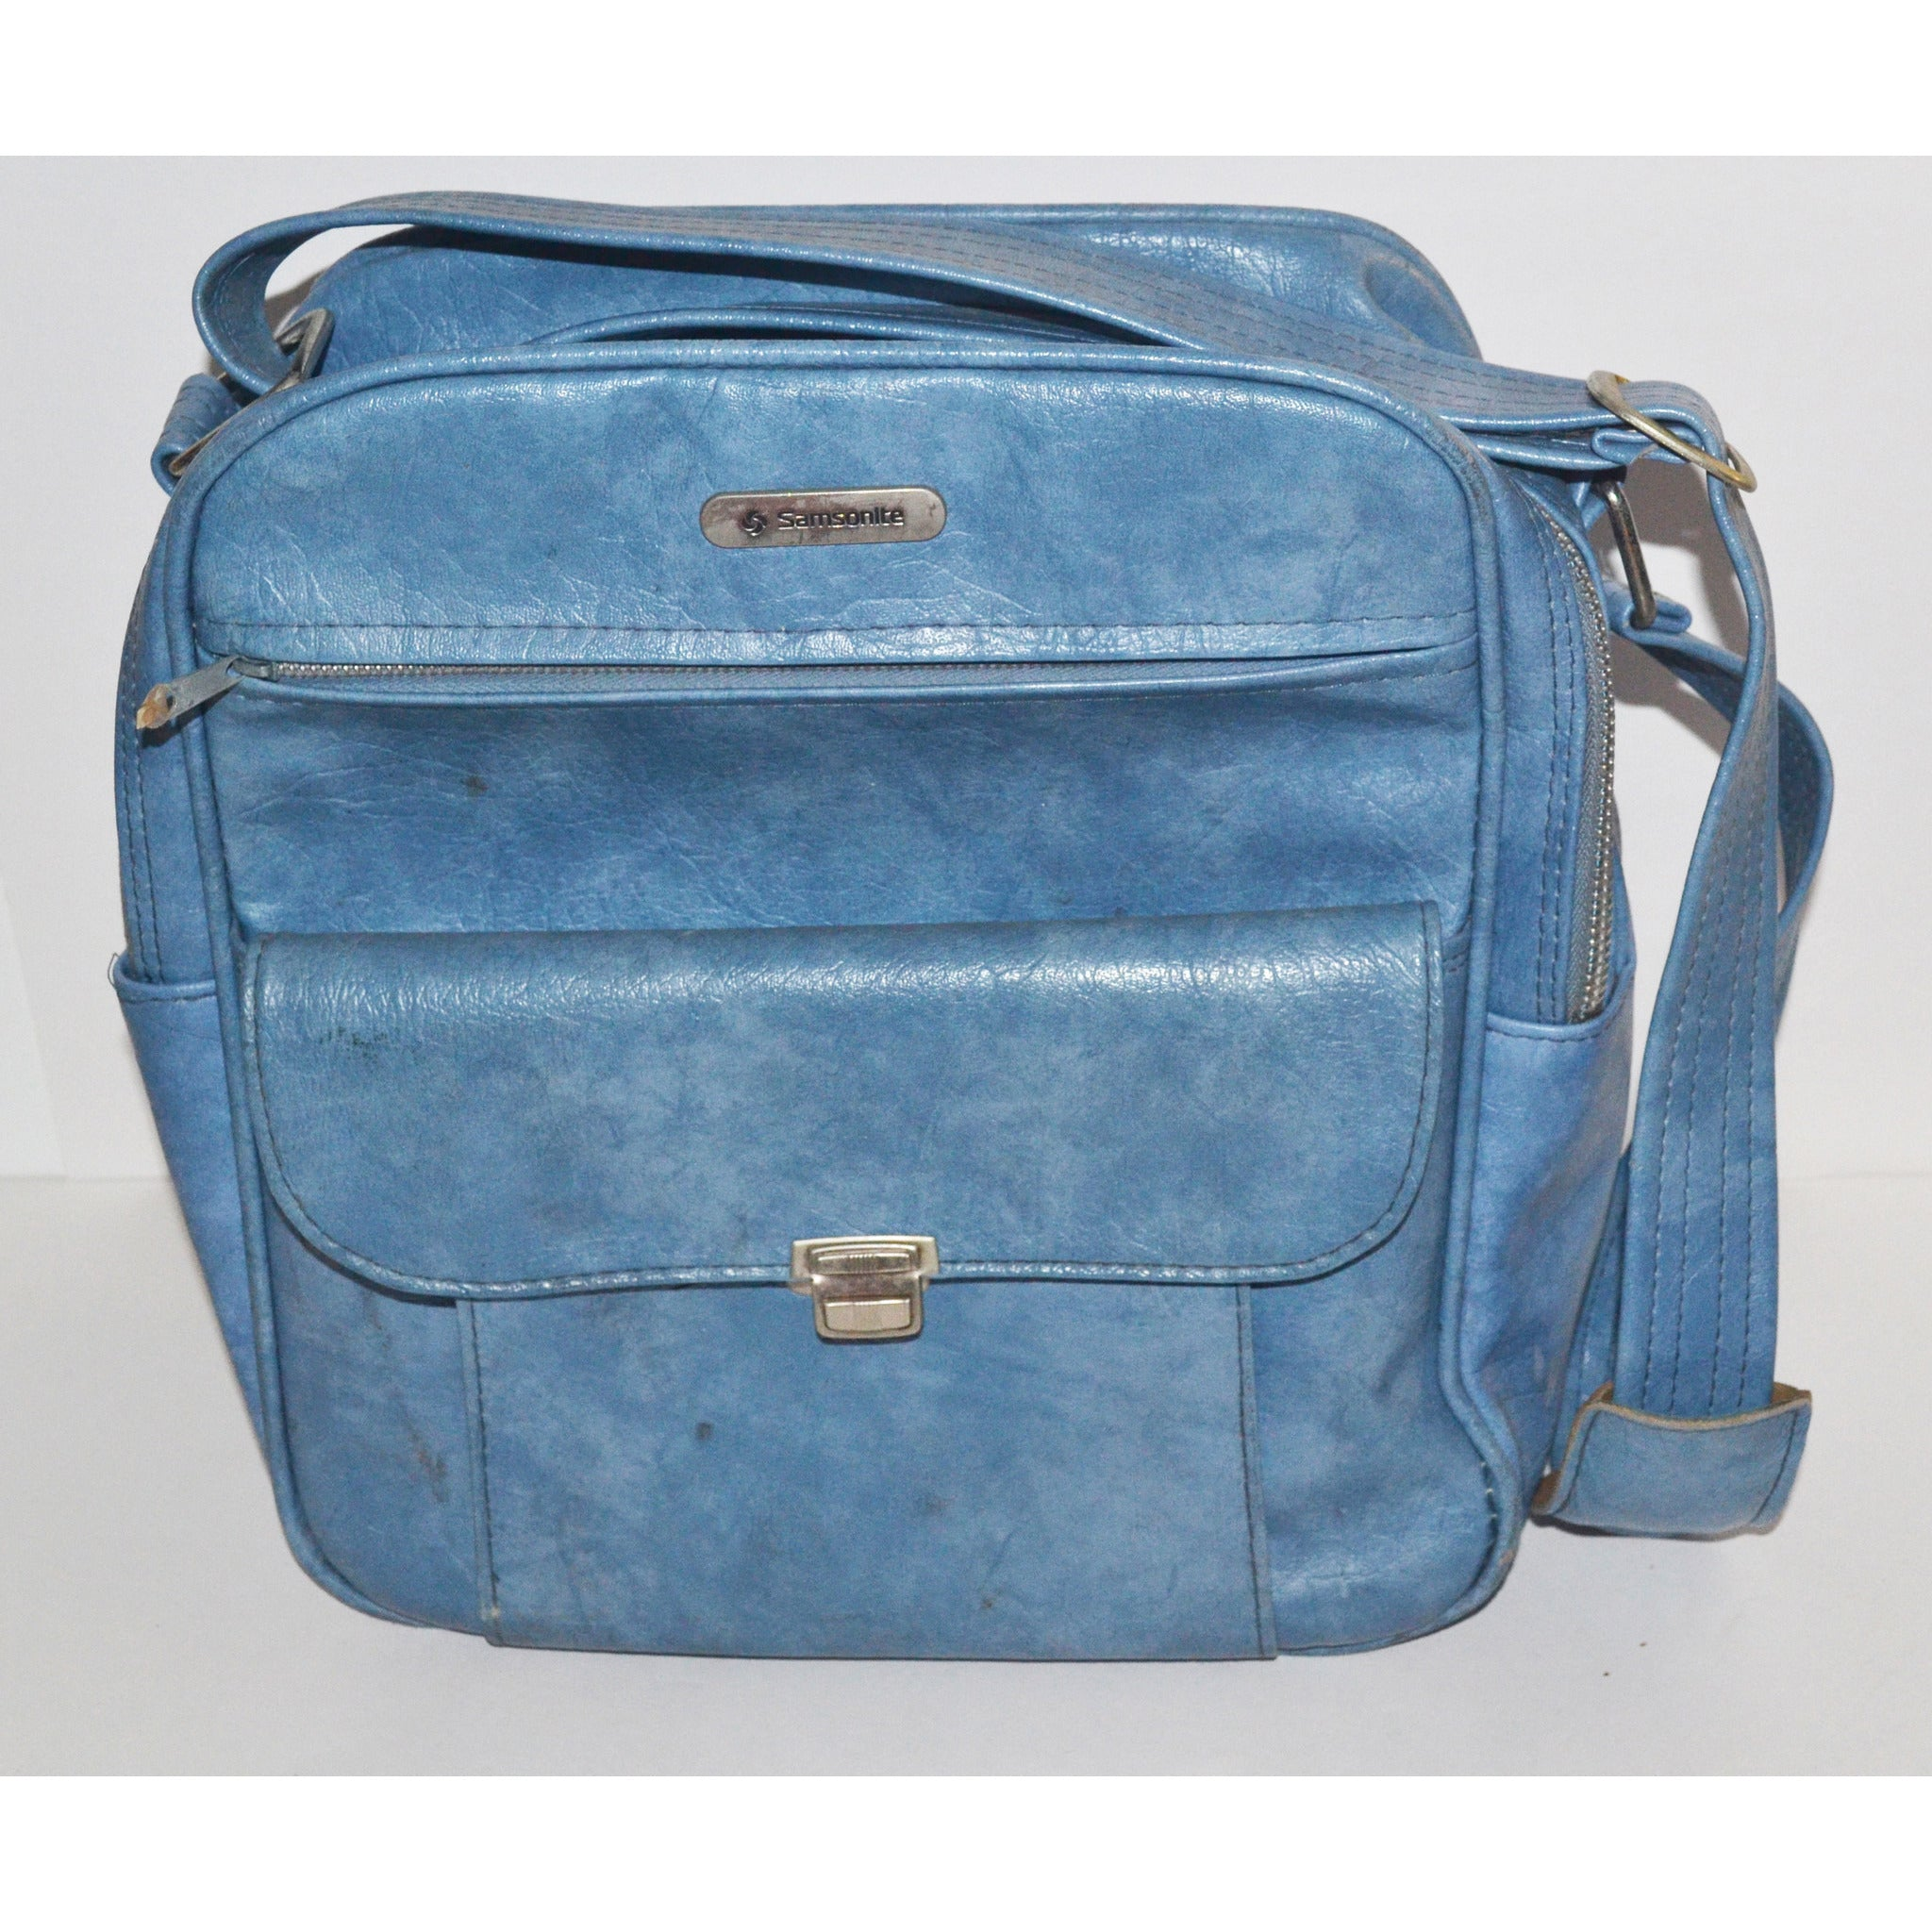 Blue Travel Bag Luggage By Samsonite